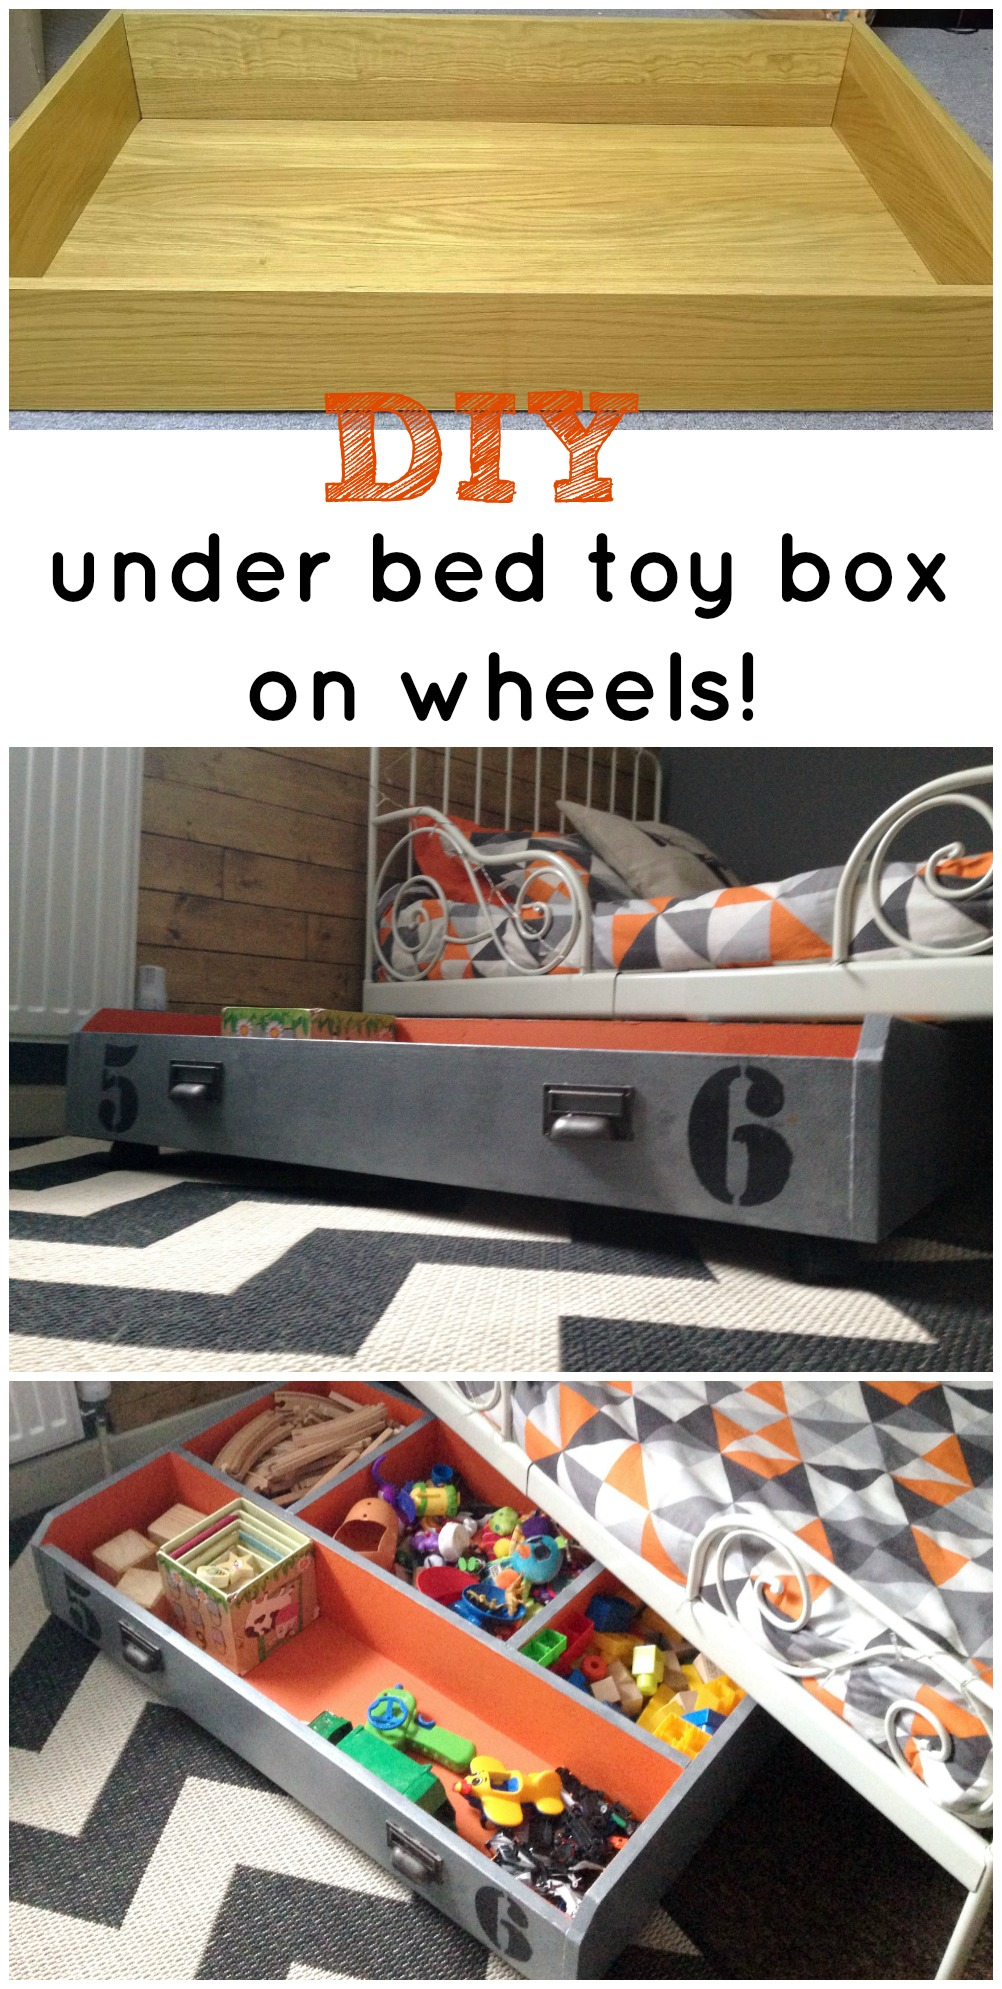 diy-under-bed-toy-box5B15D-2